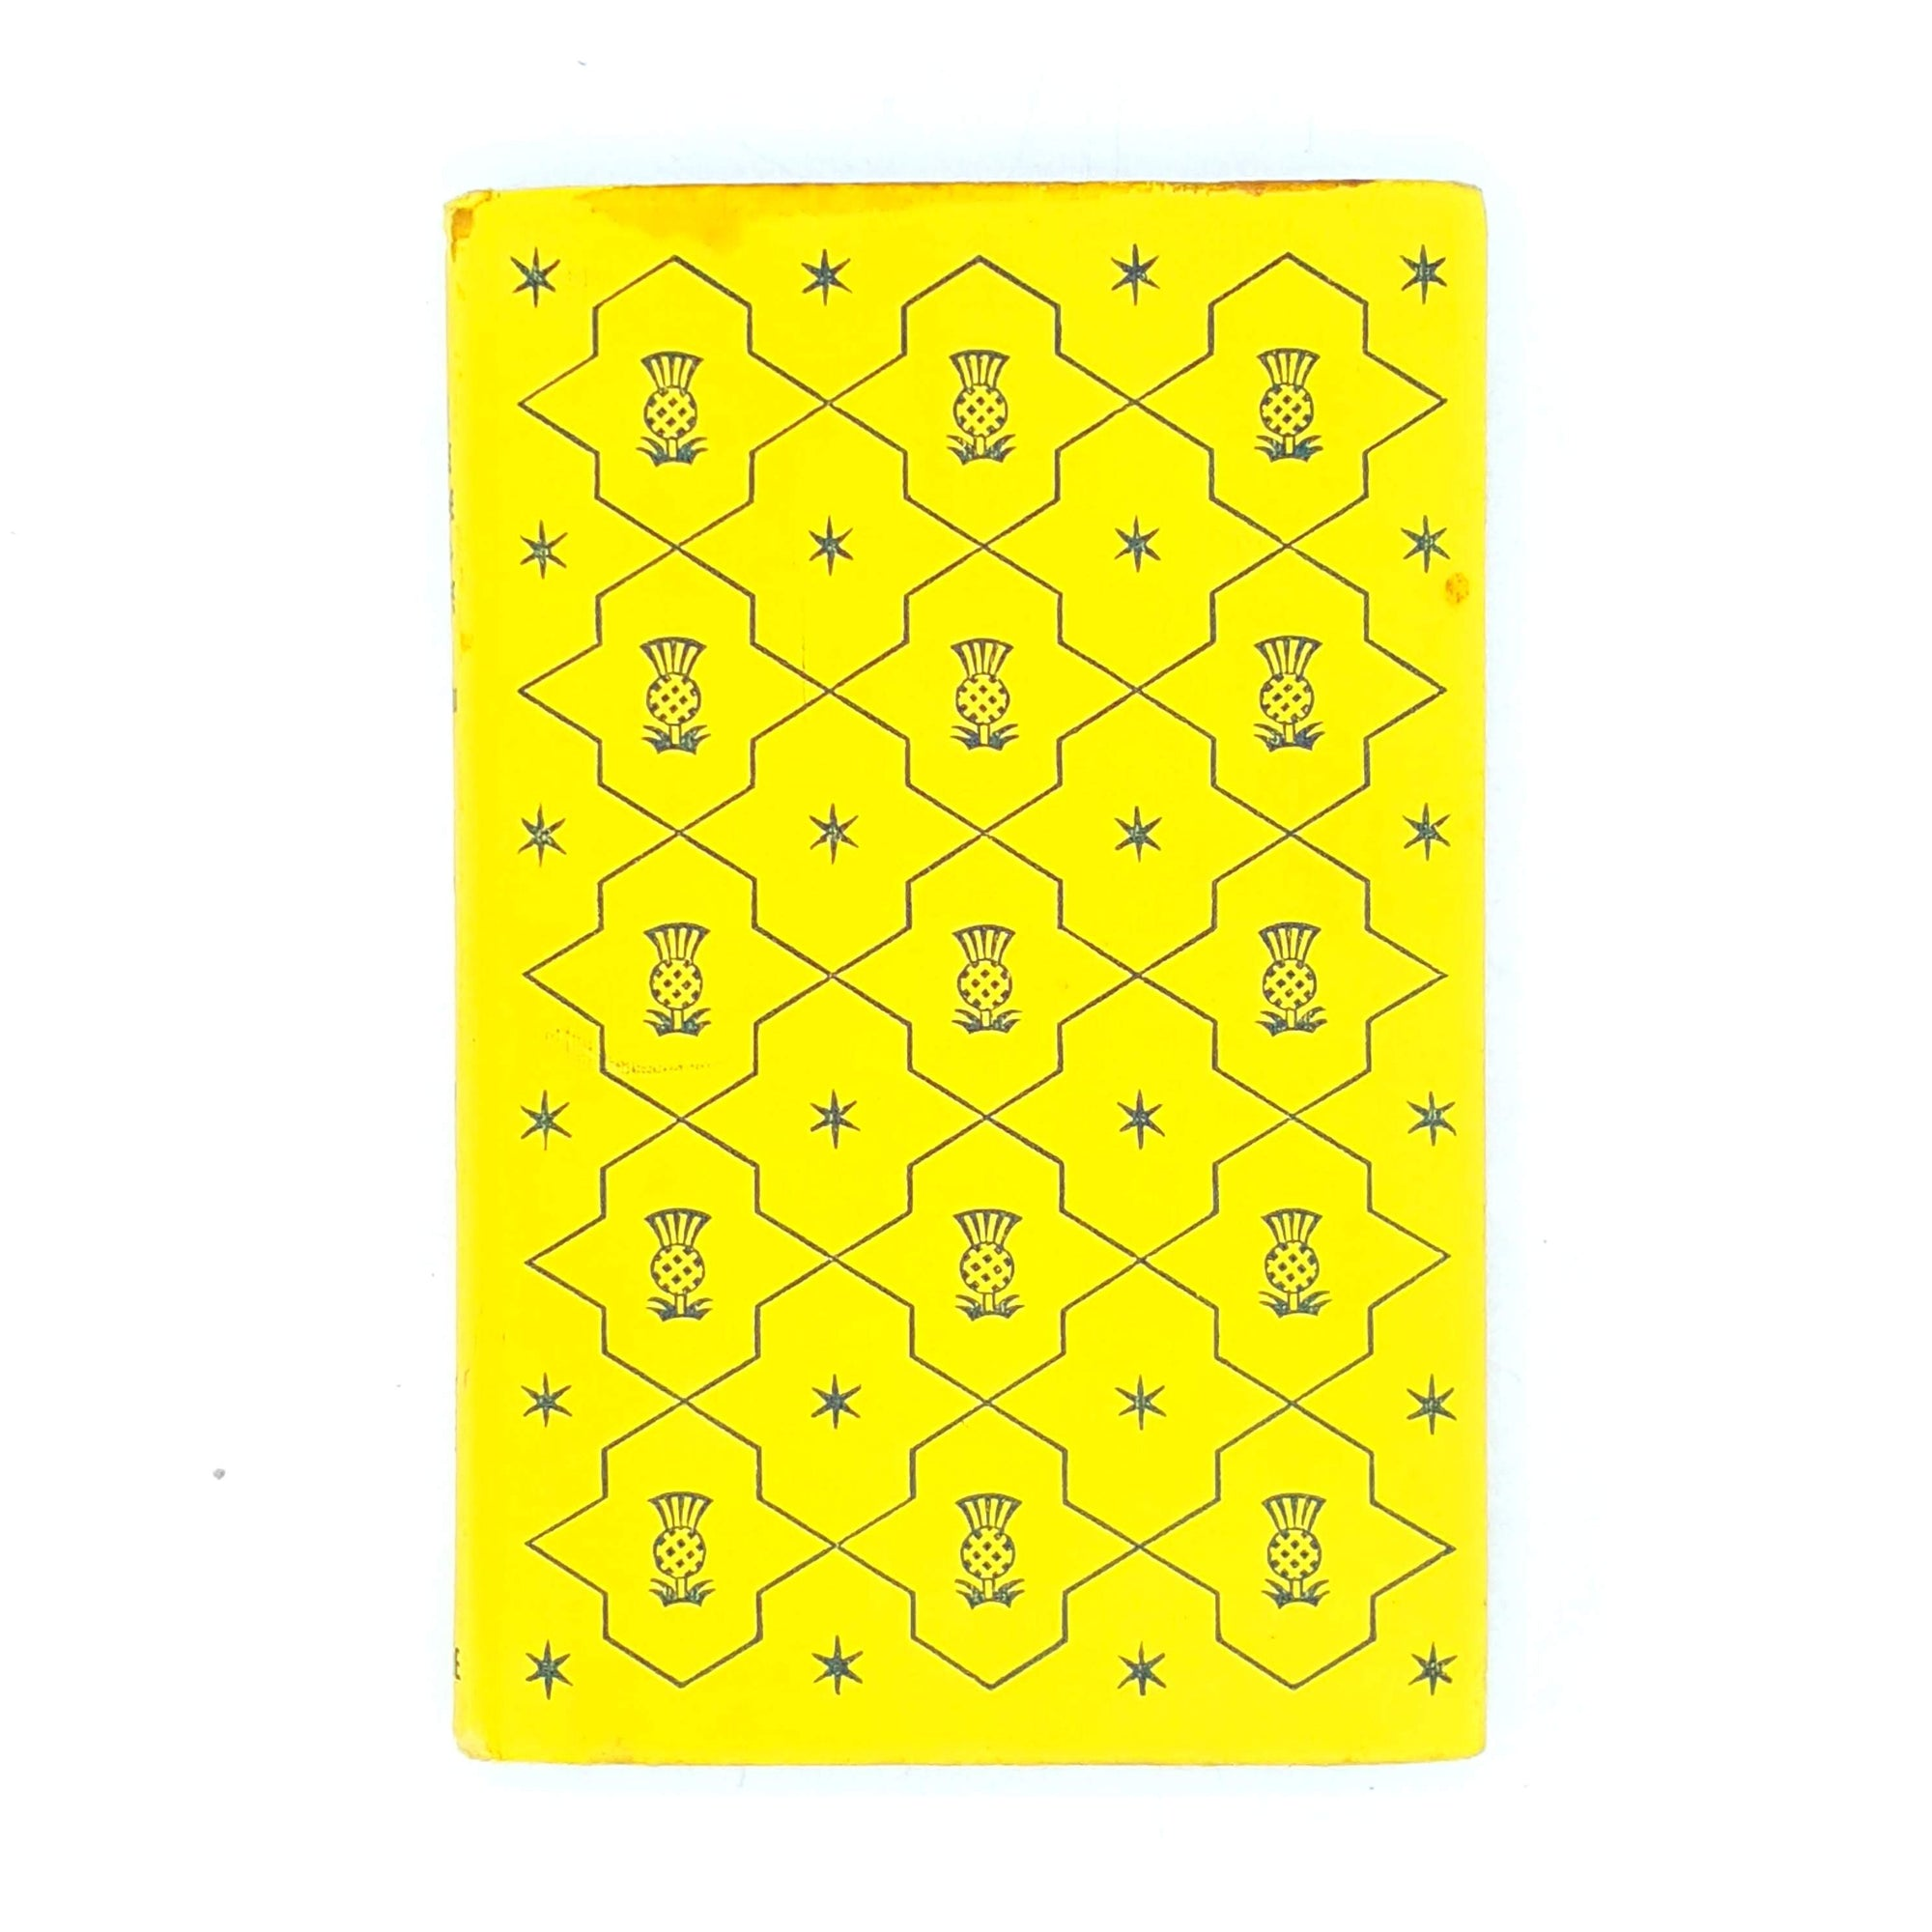 patterned-jack-frere-of-the-paratroops-blackie-yellow-vintage-major-jt-gorman-decorative-country-house-library-books-old-thrift-